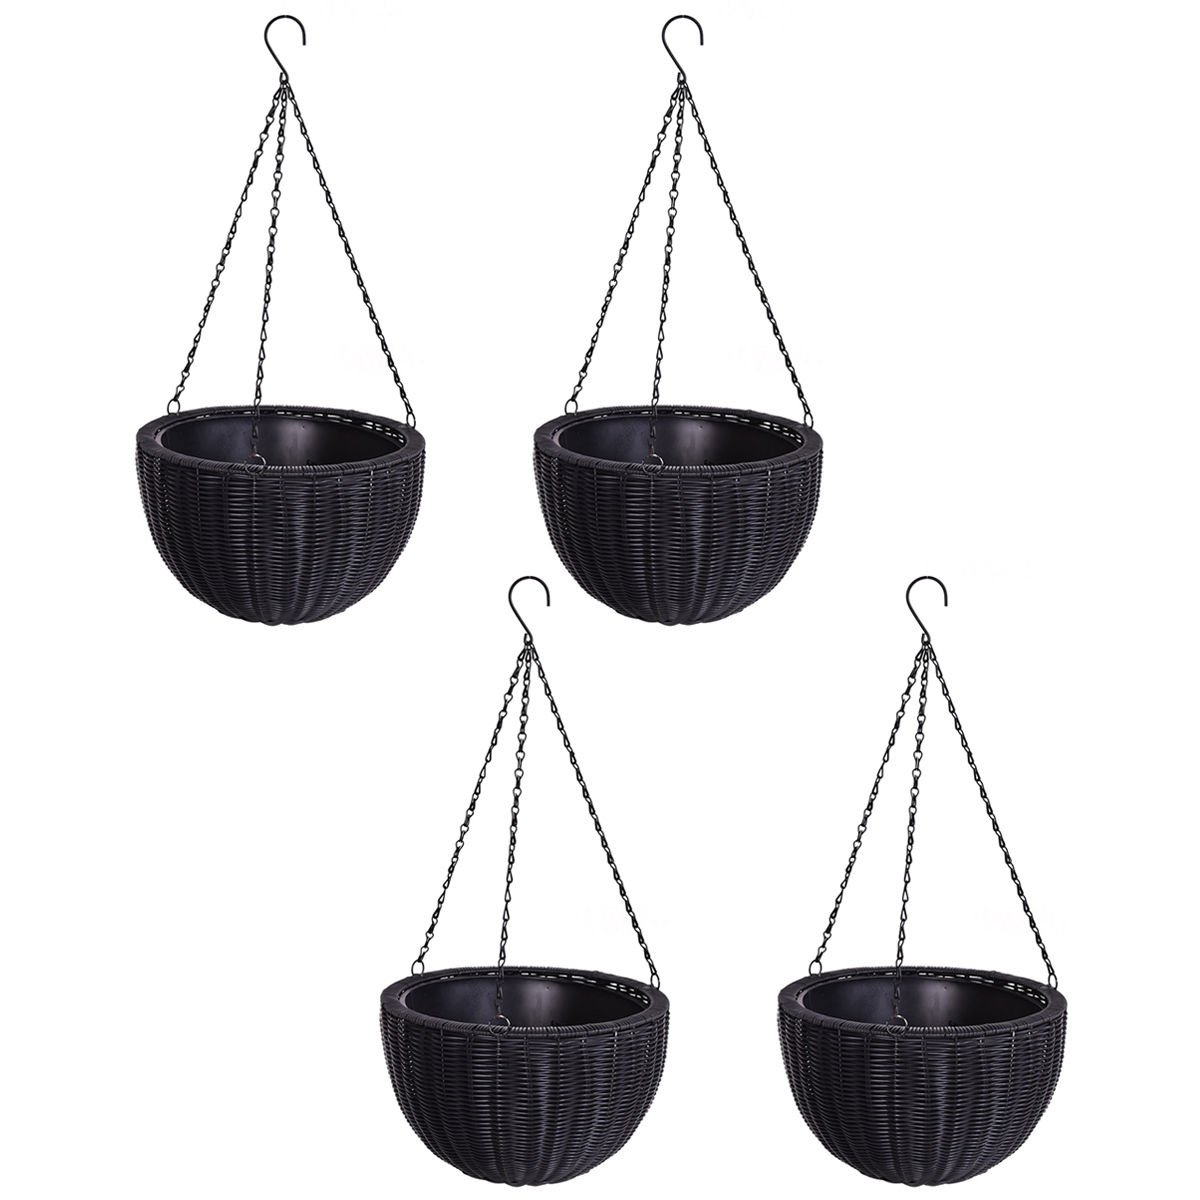 4 PCS 13.8'' Round PE Rattan Garden Plant Hanging Planters Decor Pots by allgoodsdelight365